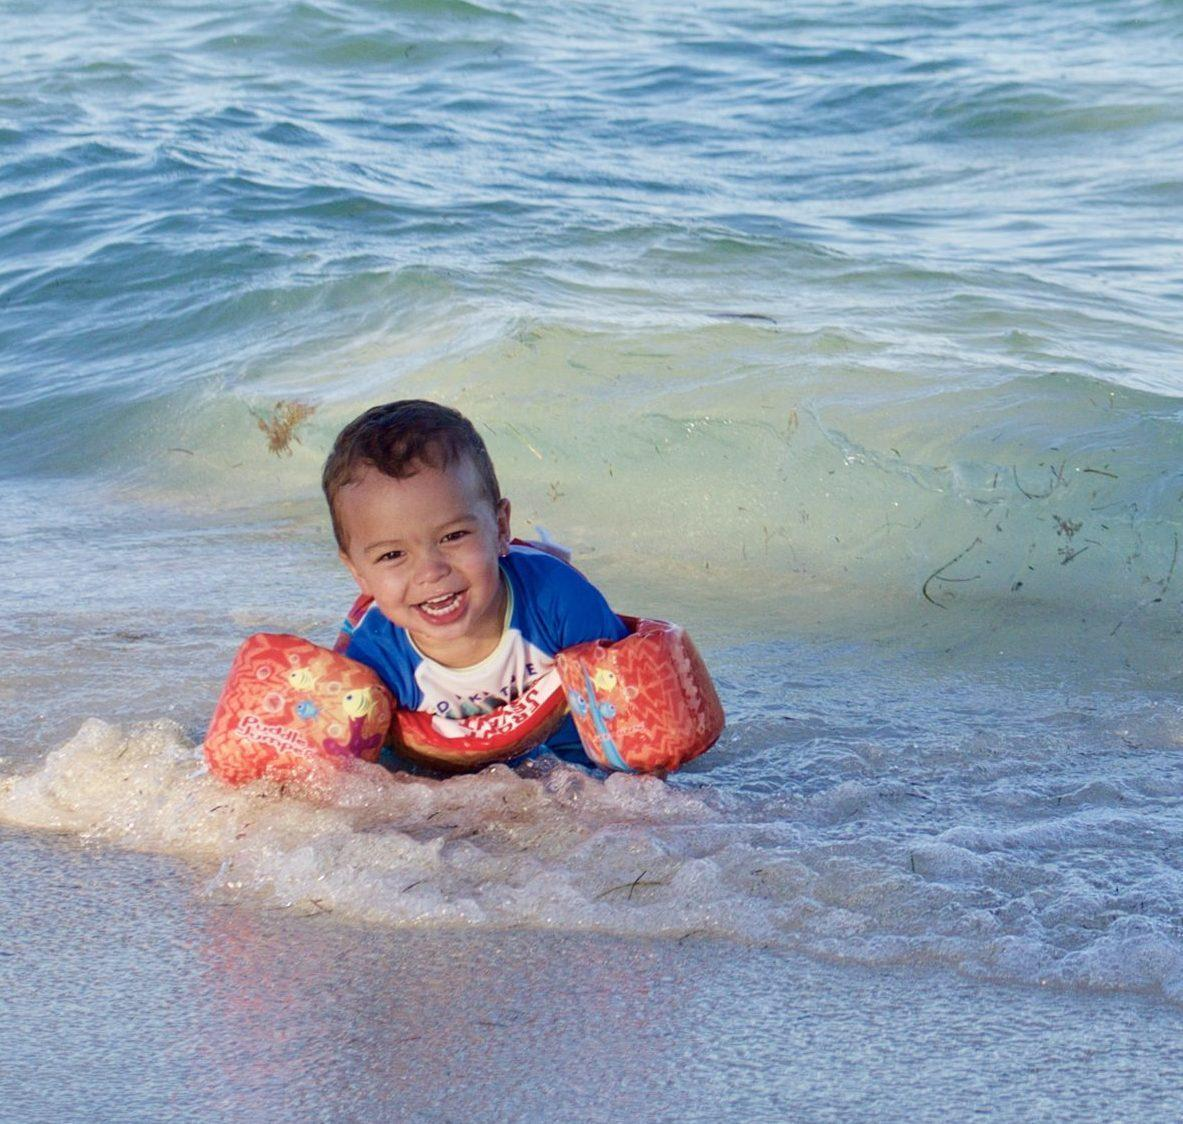 Toddler Floatie: The Puddle Jumper